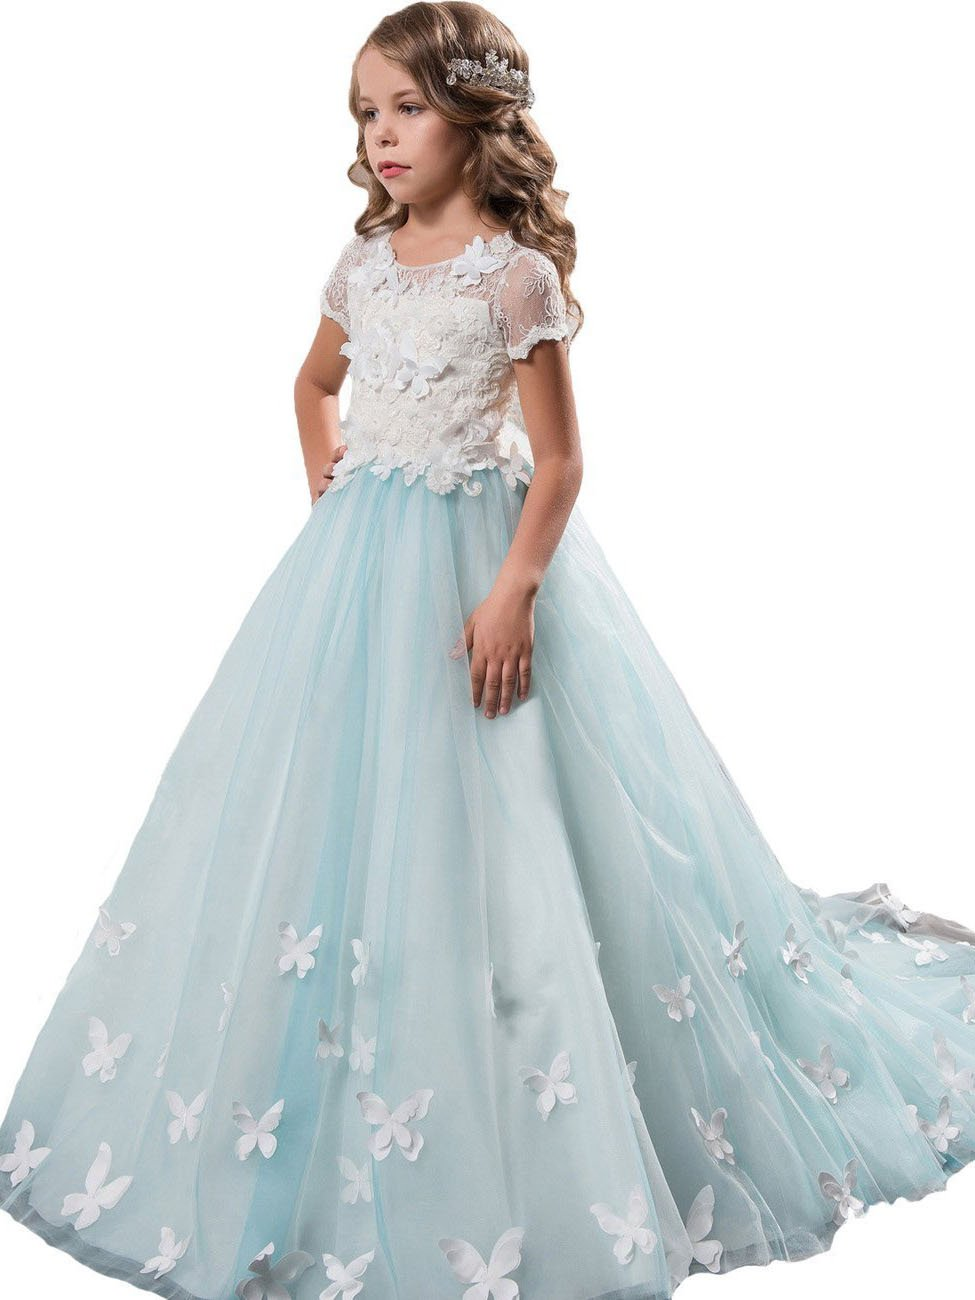 Stunning Lace White Blue Flower Girl Dresses with Butterfly Girls' Pageant Dress MFD120